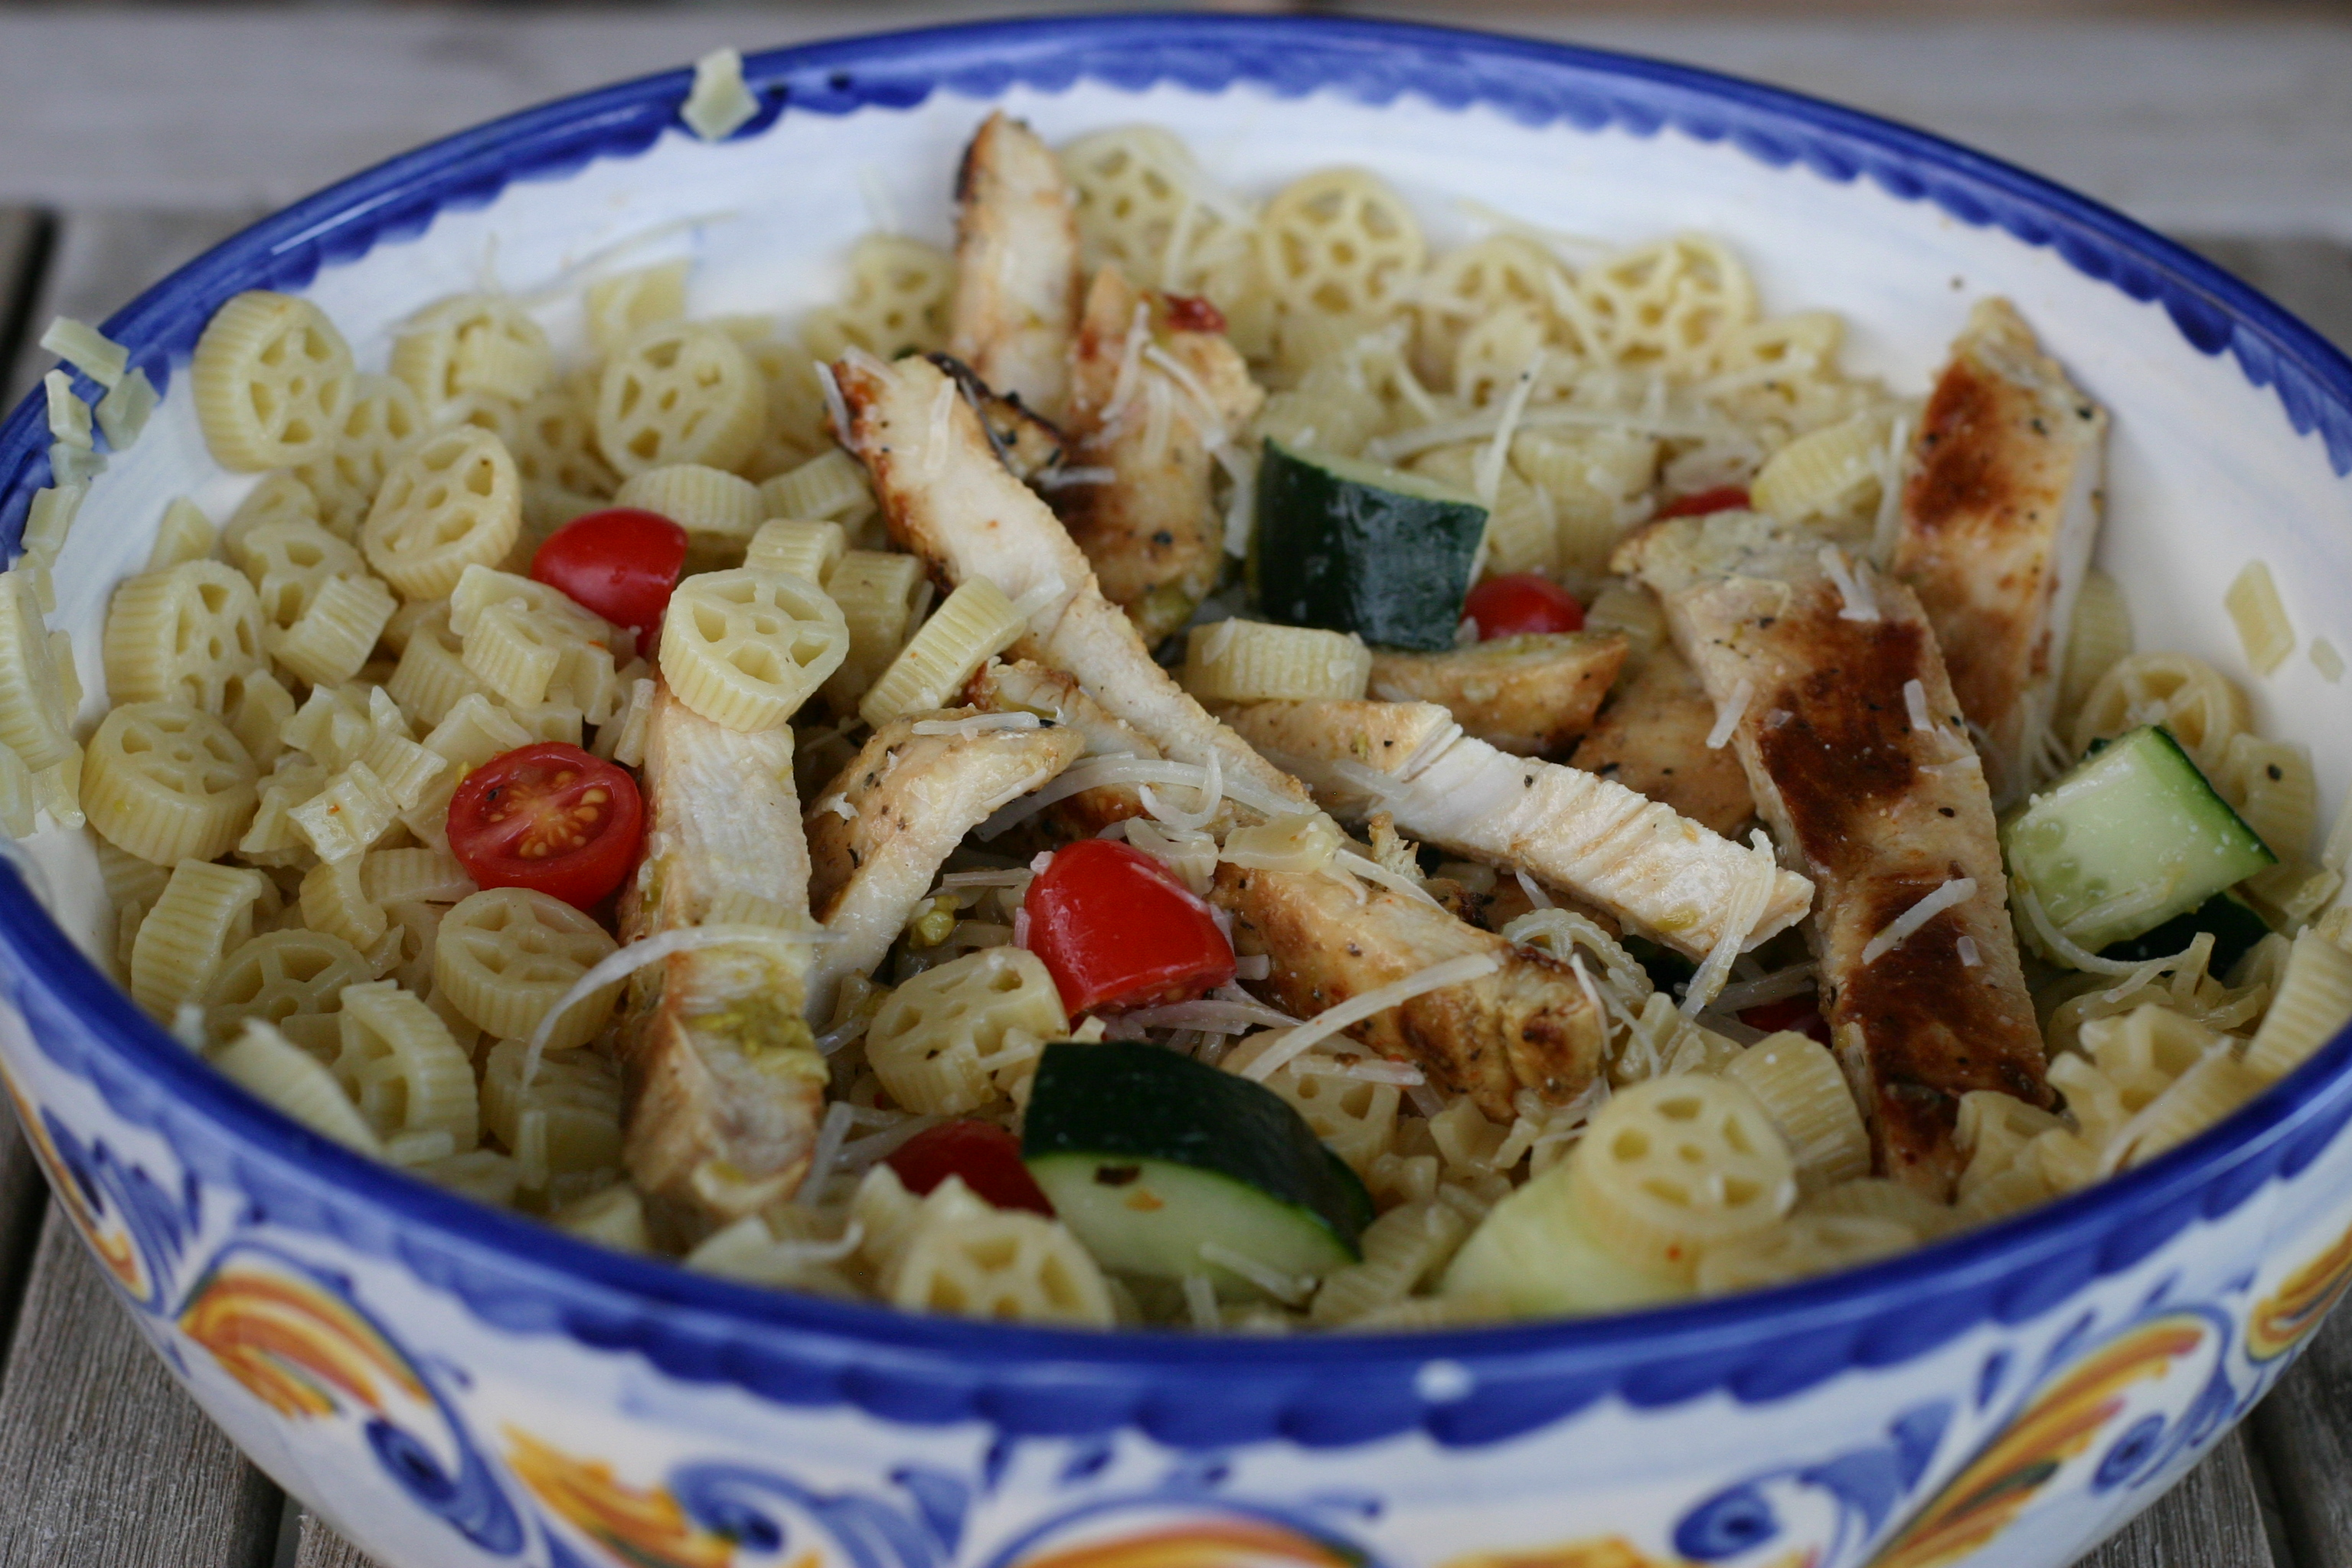 May 08,  · Quick and easy Pesto Chicken Pasta Salad with fresh ingredients and loads of flavor! This is the perfect side dish for any get together, backyard bbq, or potluck. This post is sponsored by Walmart and SheKnows Media, all opinions are my own.4/4(2).